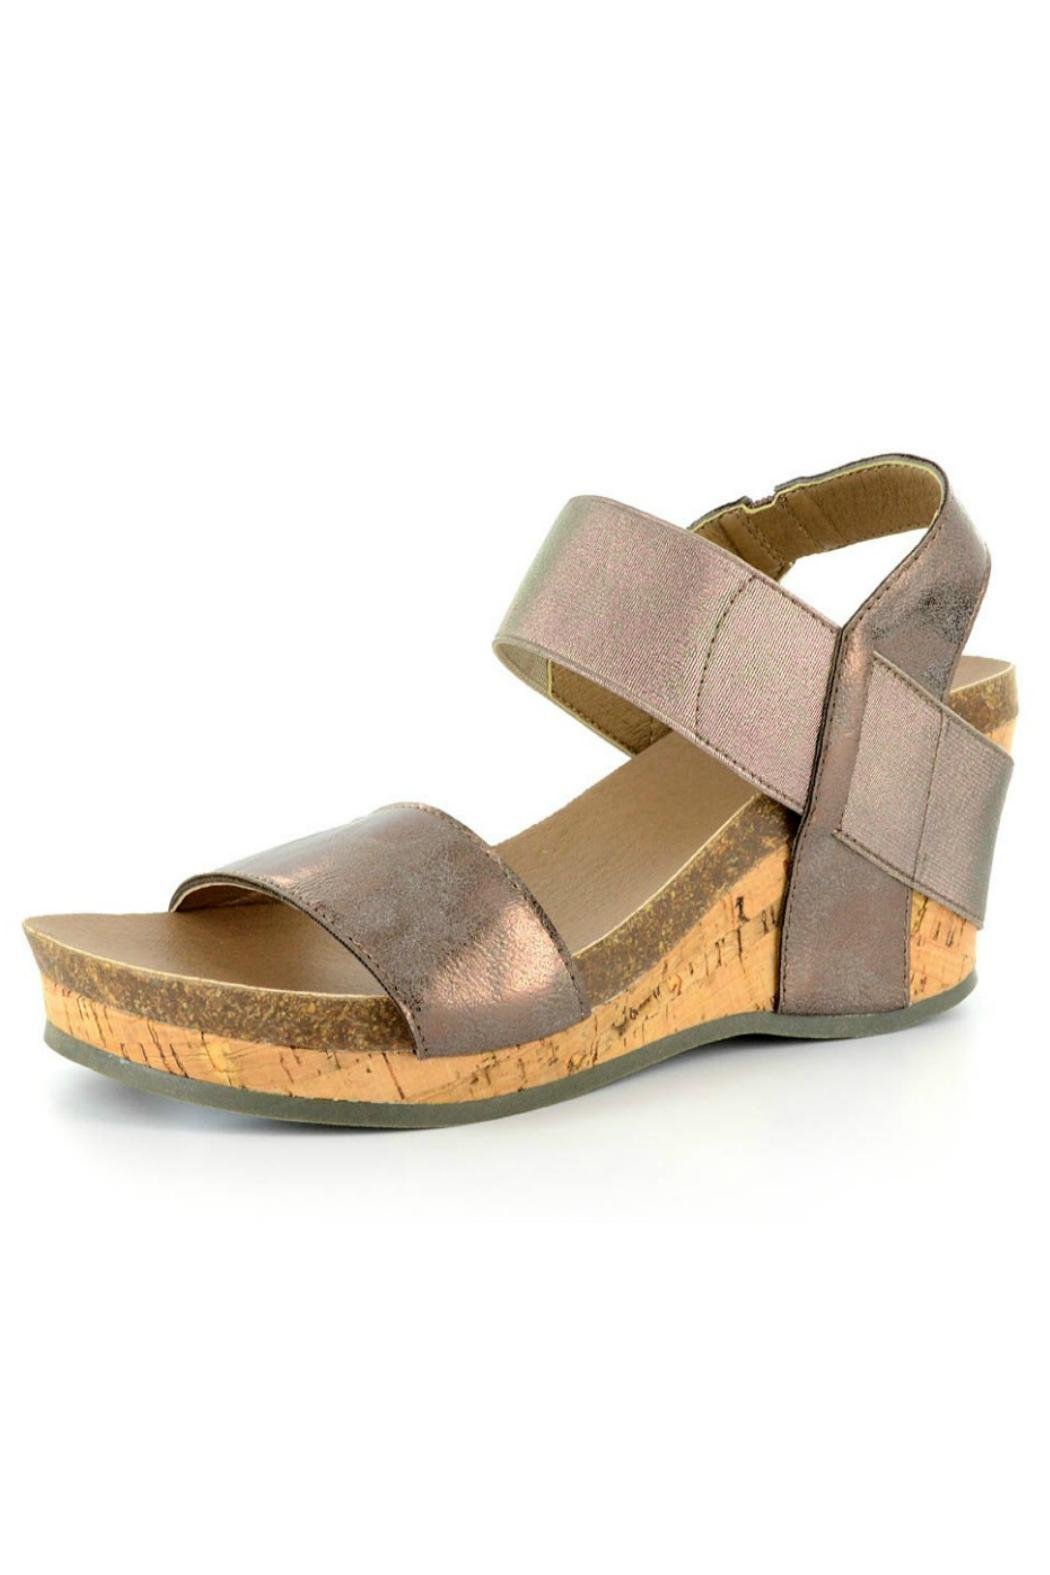 Corkys Bronze Low Wedge From Nashville By The Peacock Lane